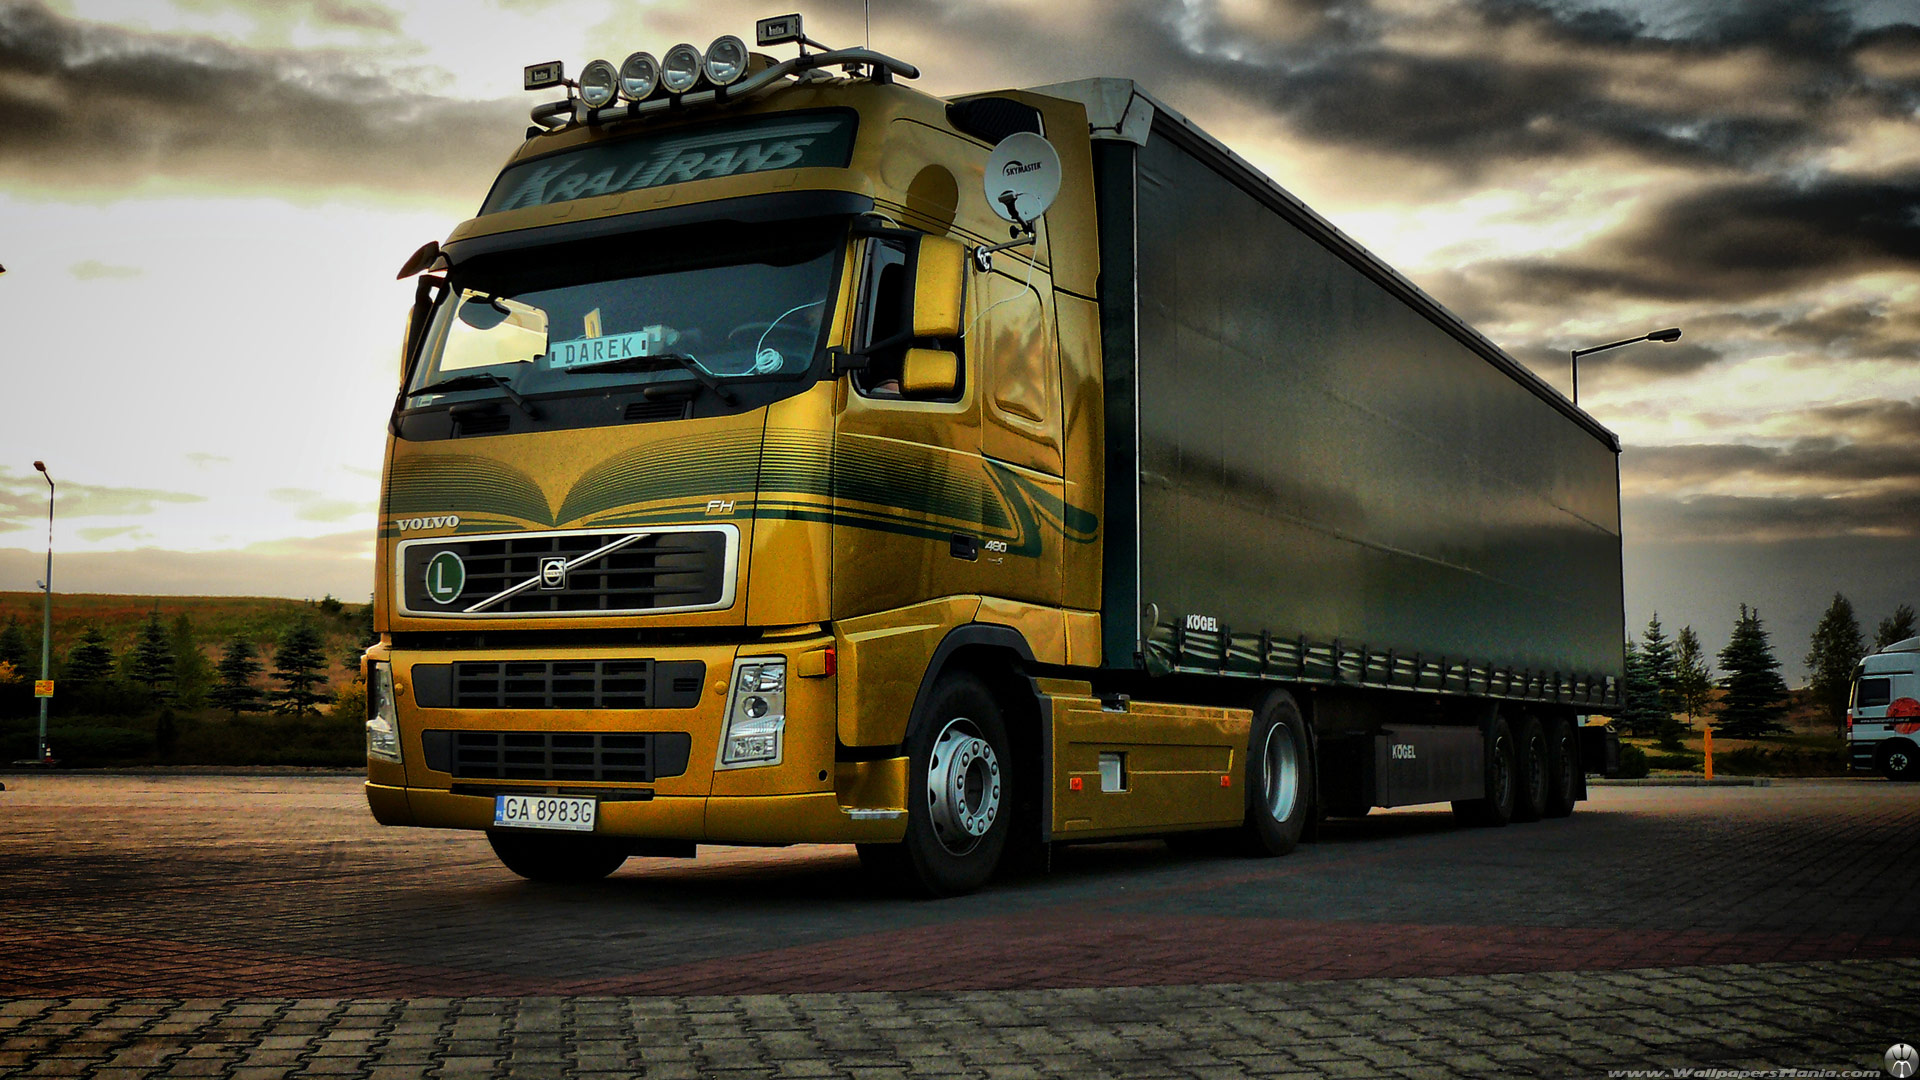 Volvo Truck Mania Trucks Fh 497678 With Resolutions 19201080 Pixel 1920x1080